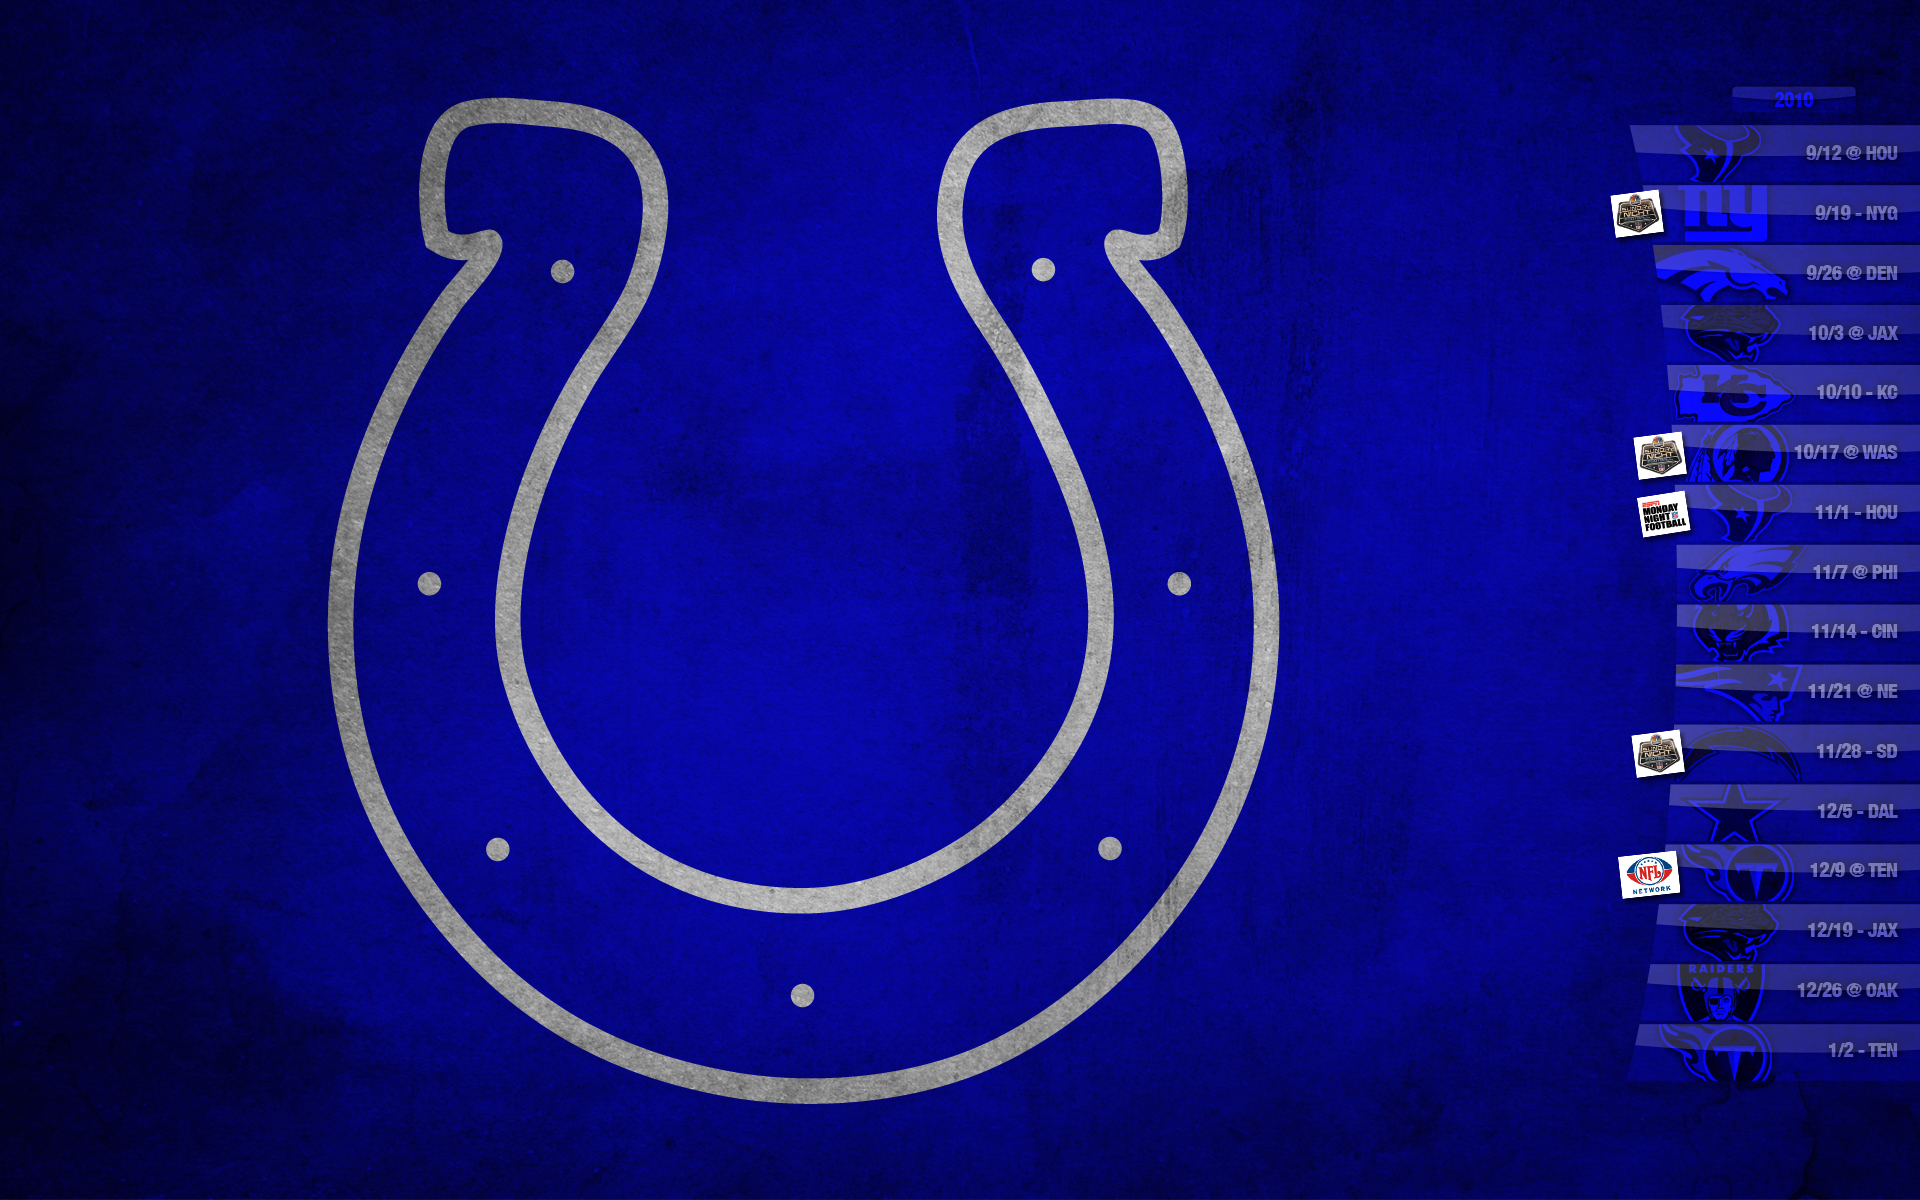 Indianapolis Colts wallpapers | Indianapolis Colts background